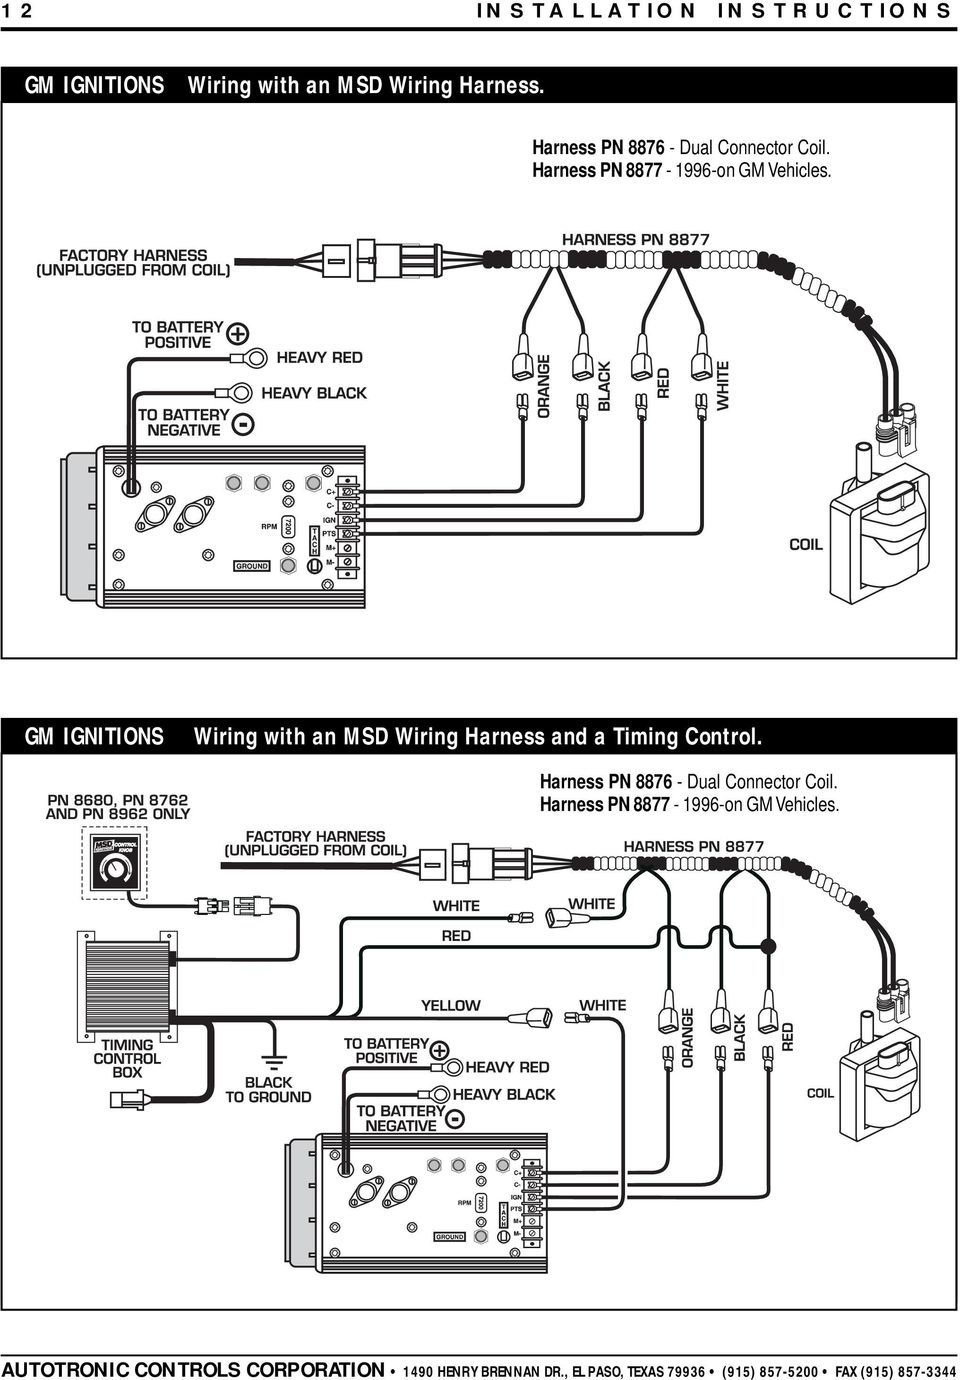 hight resolution of harness pn 8877 1996 on gm vehicles